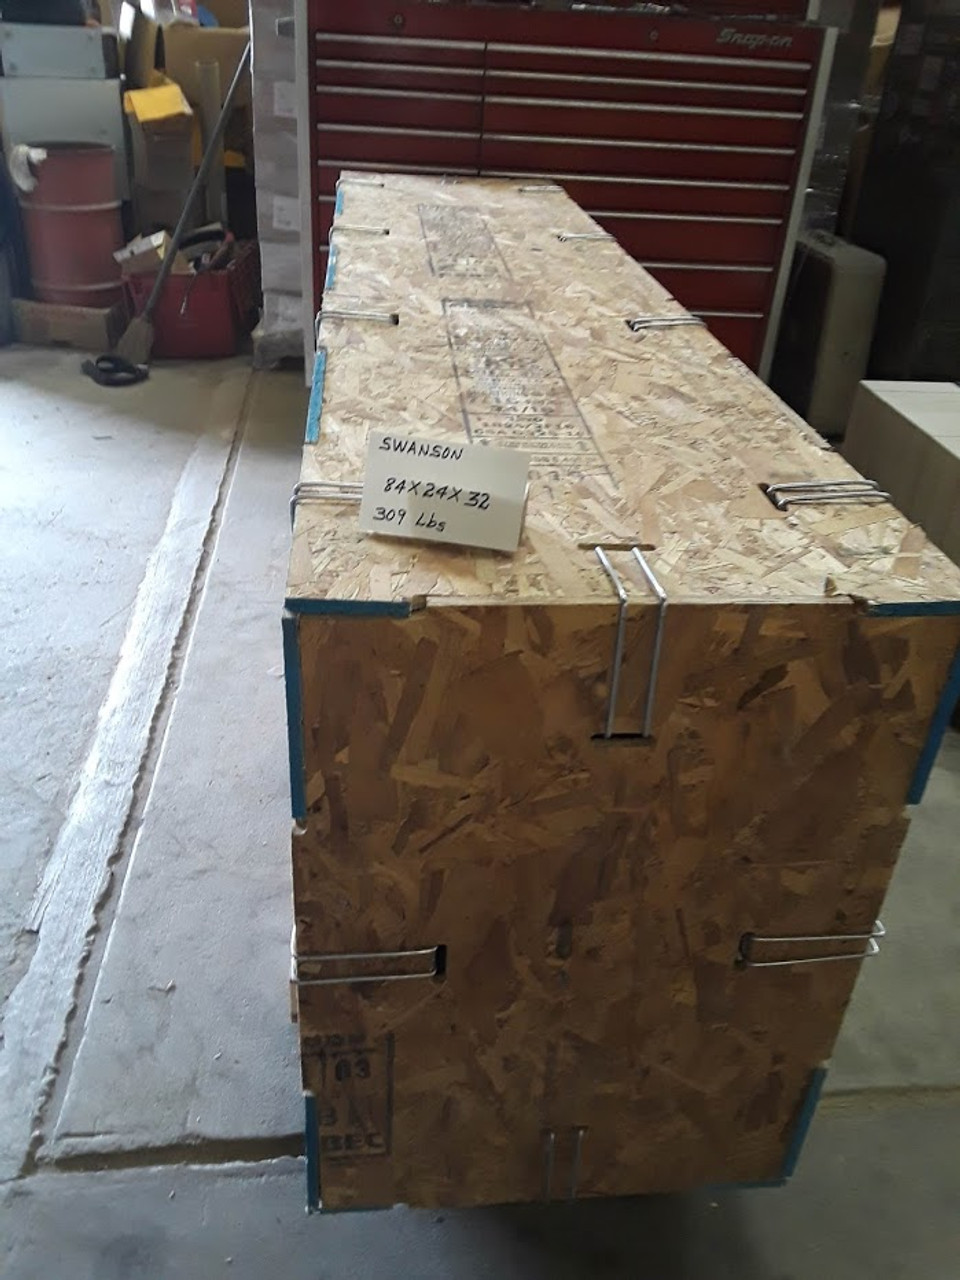 Typical fireplace hearth shipping crate, nationwide delivery